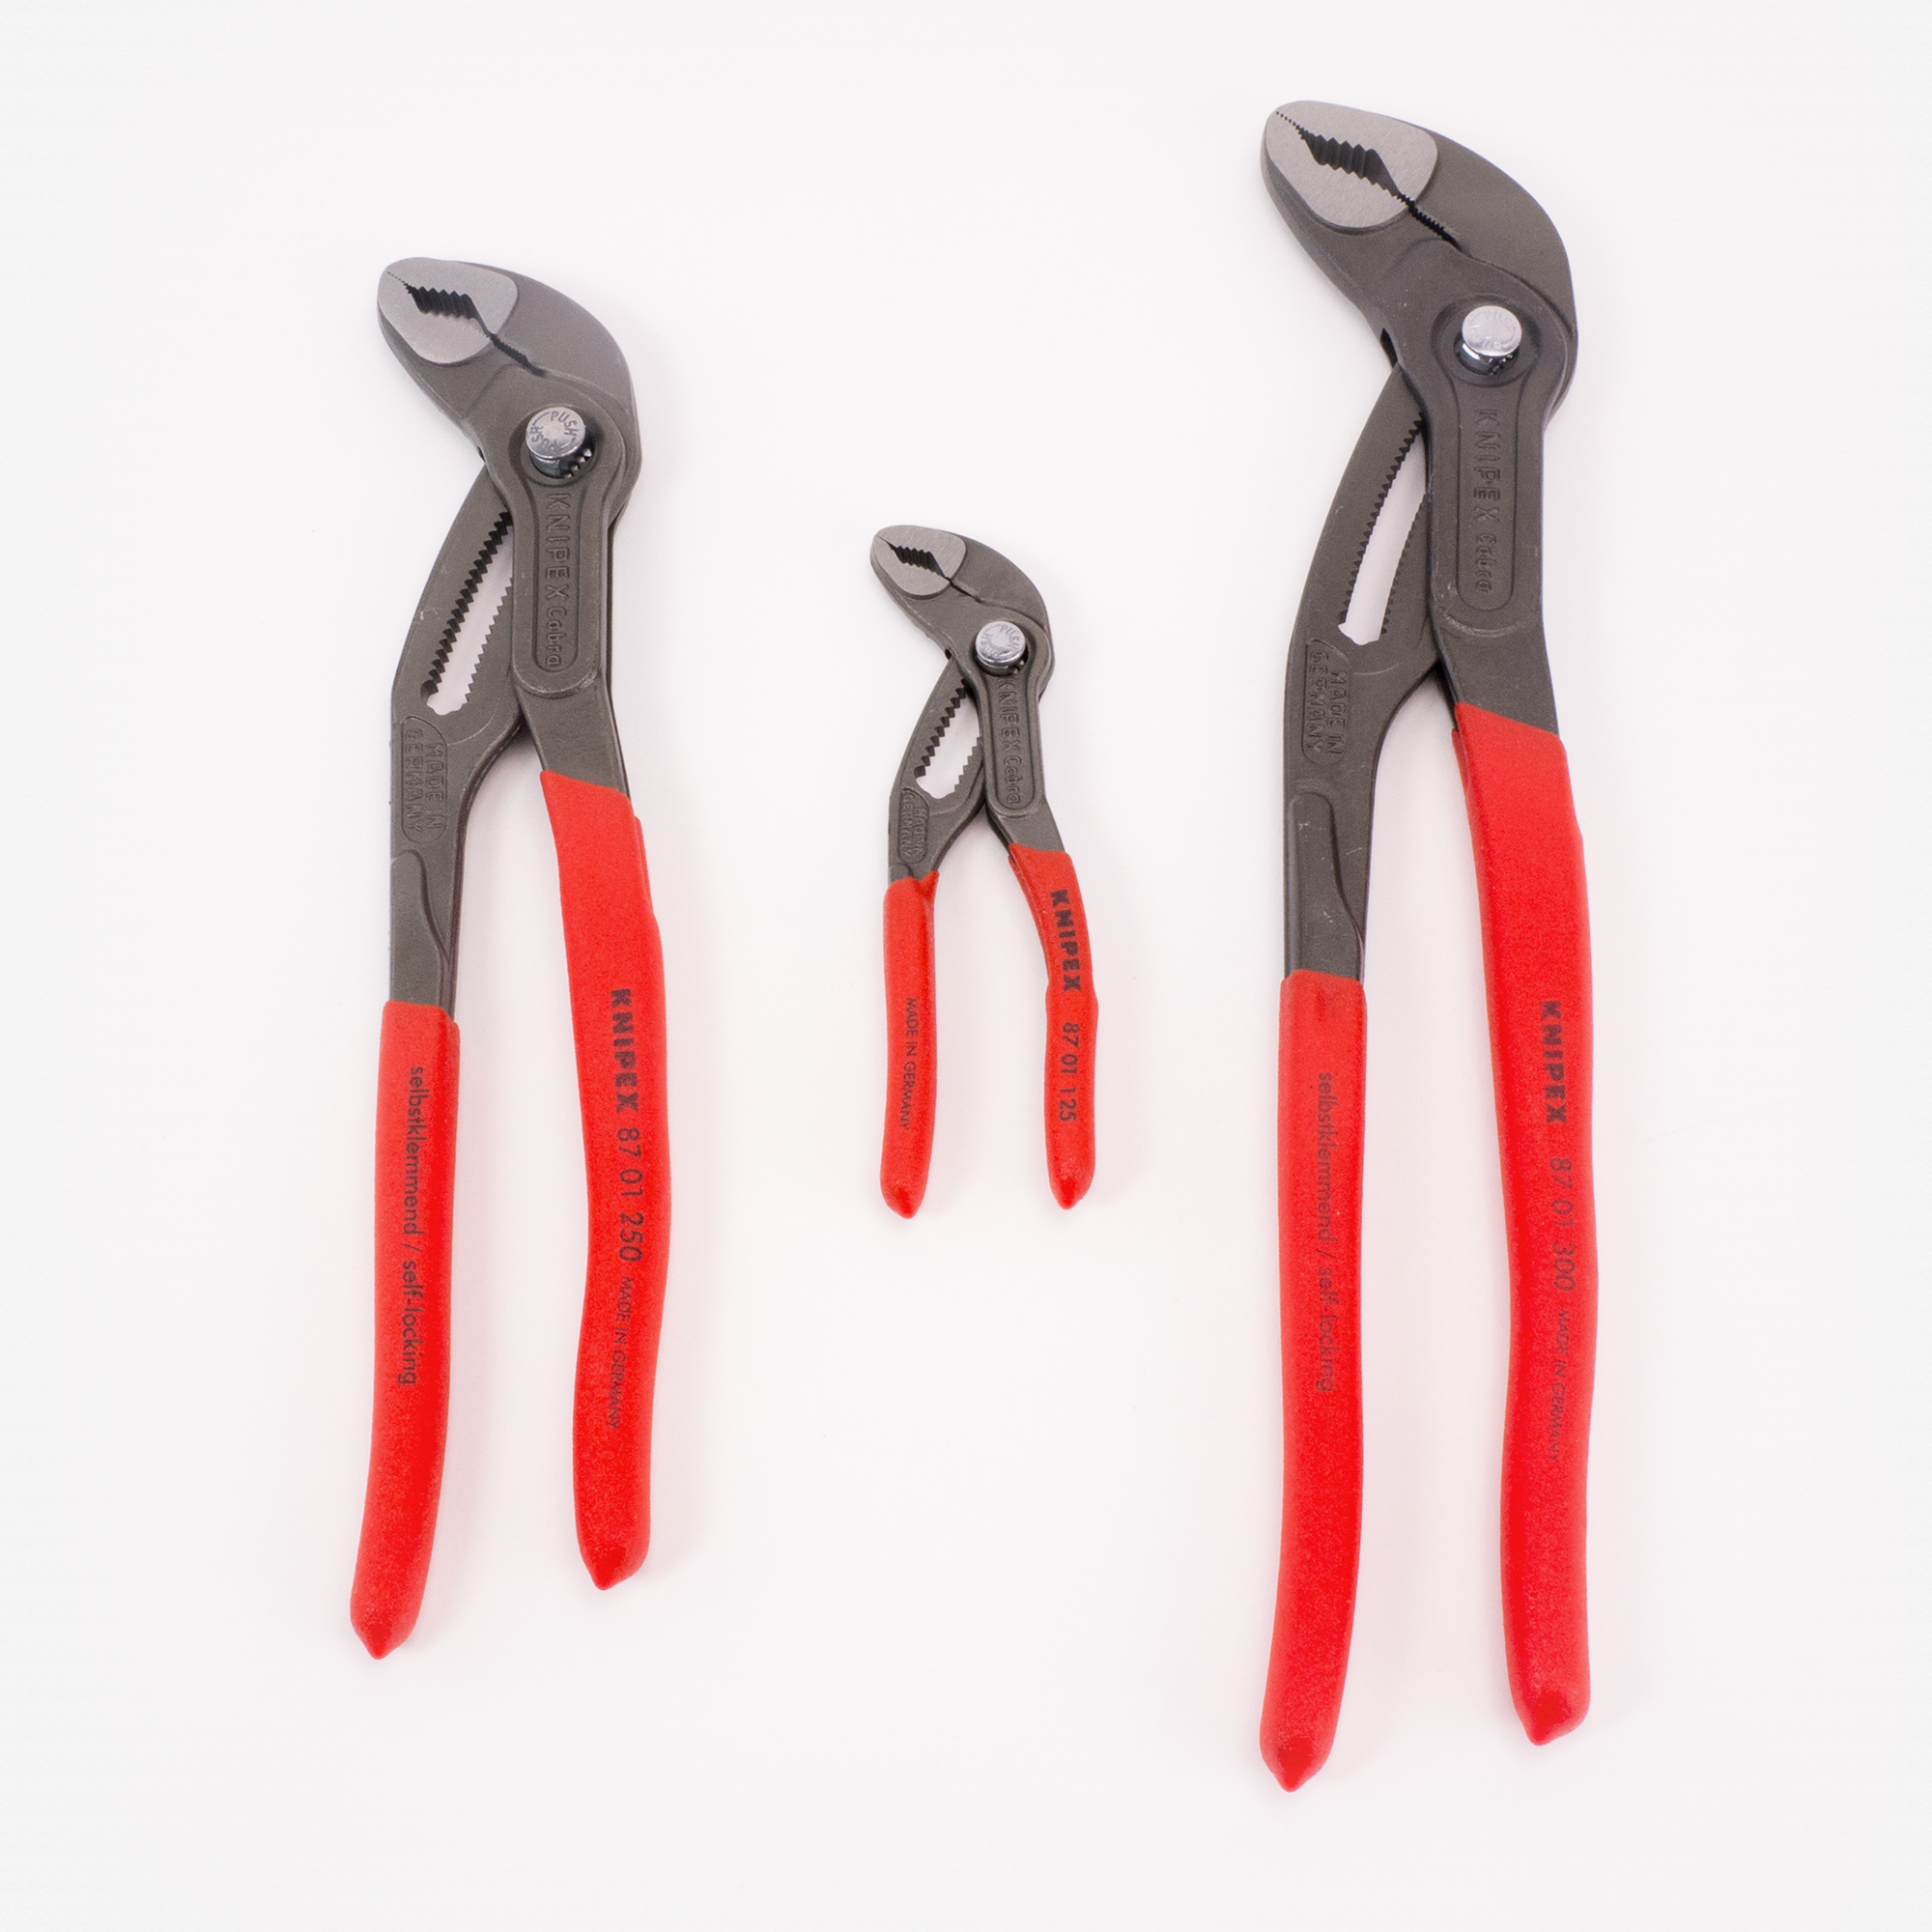 "Knipex Cobra Pliers Set, 3 Pieces - 5"", 10"", and 12"" - KC Tool"